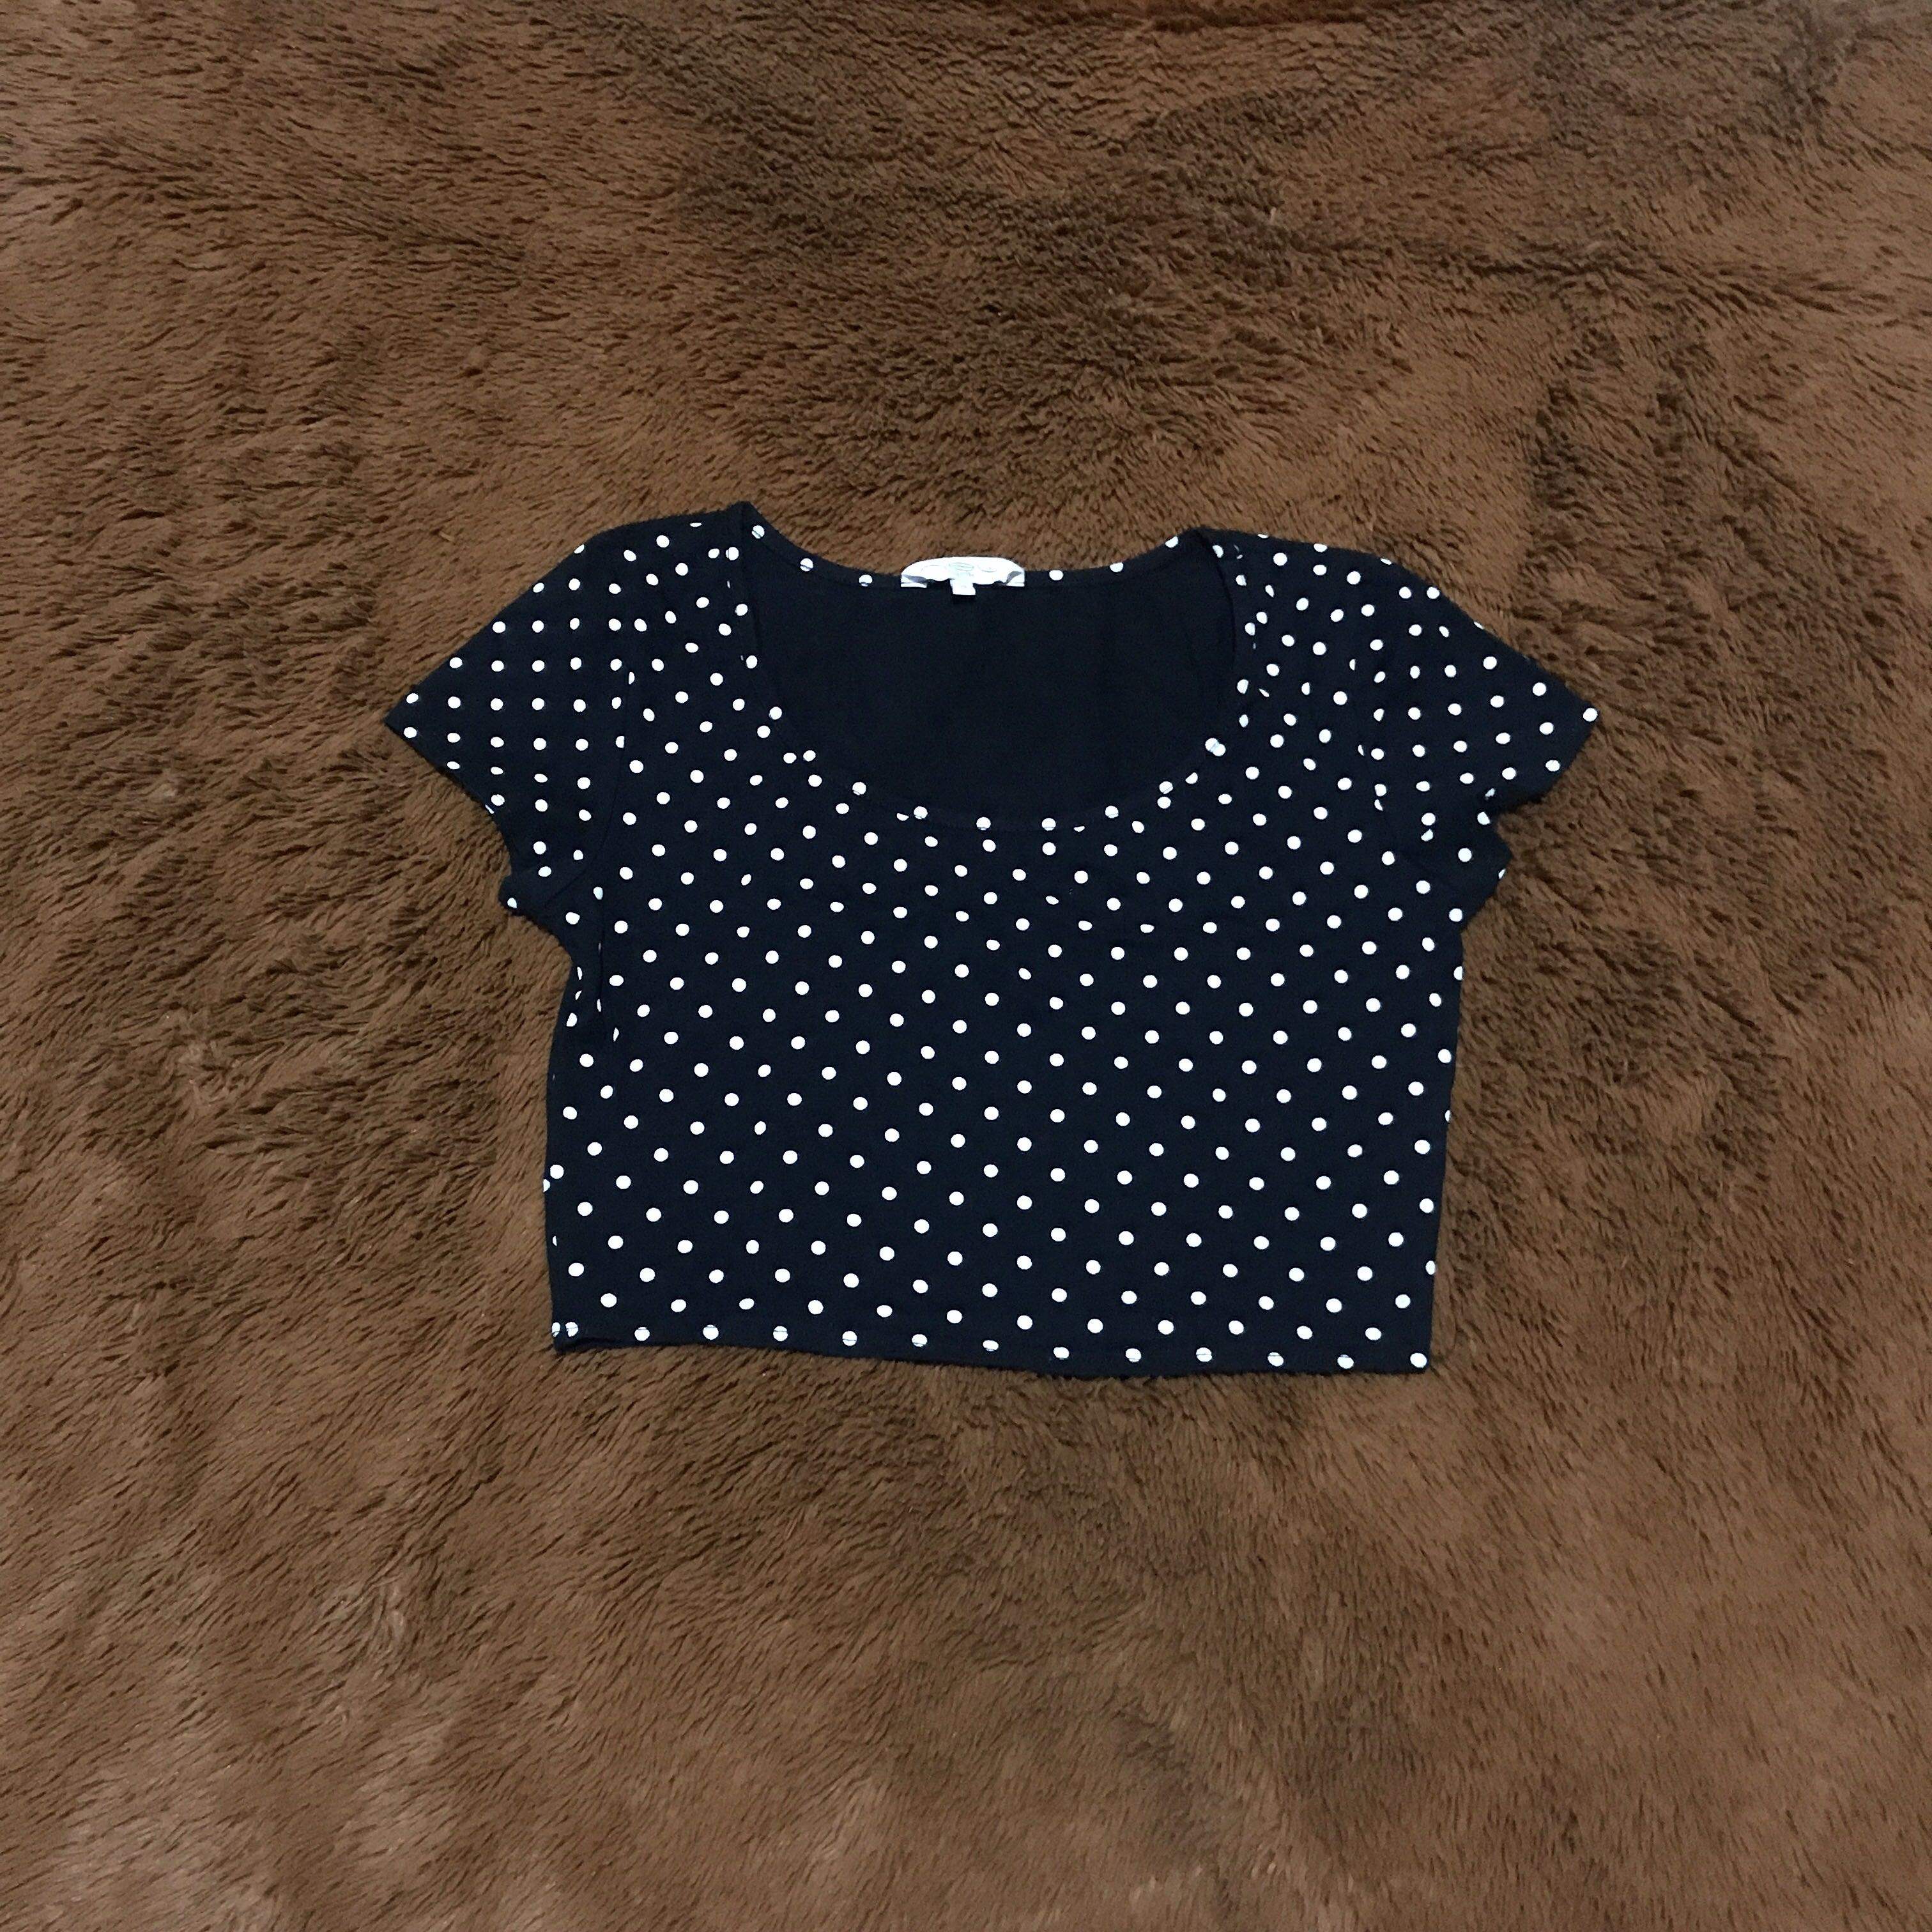 Polkadot Crop Top by New Look